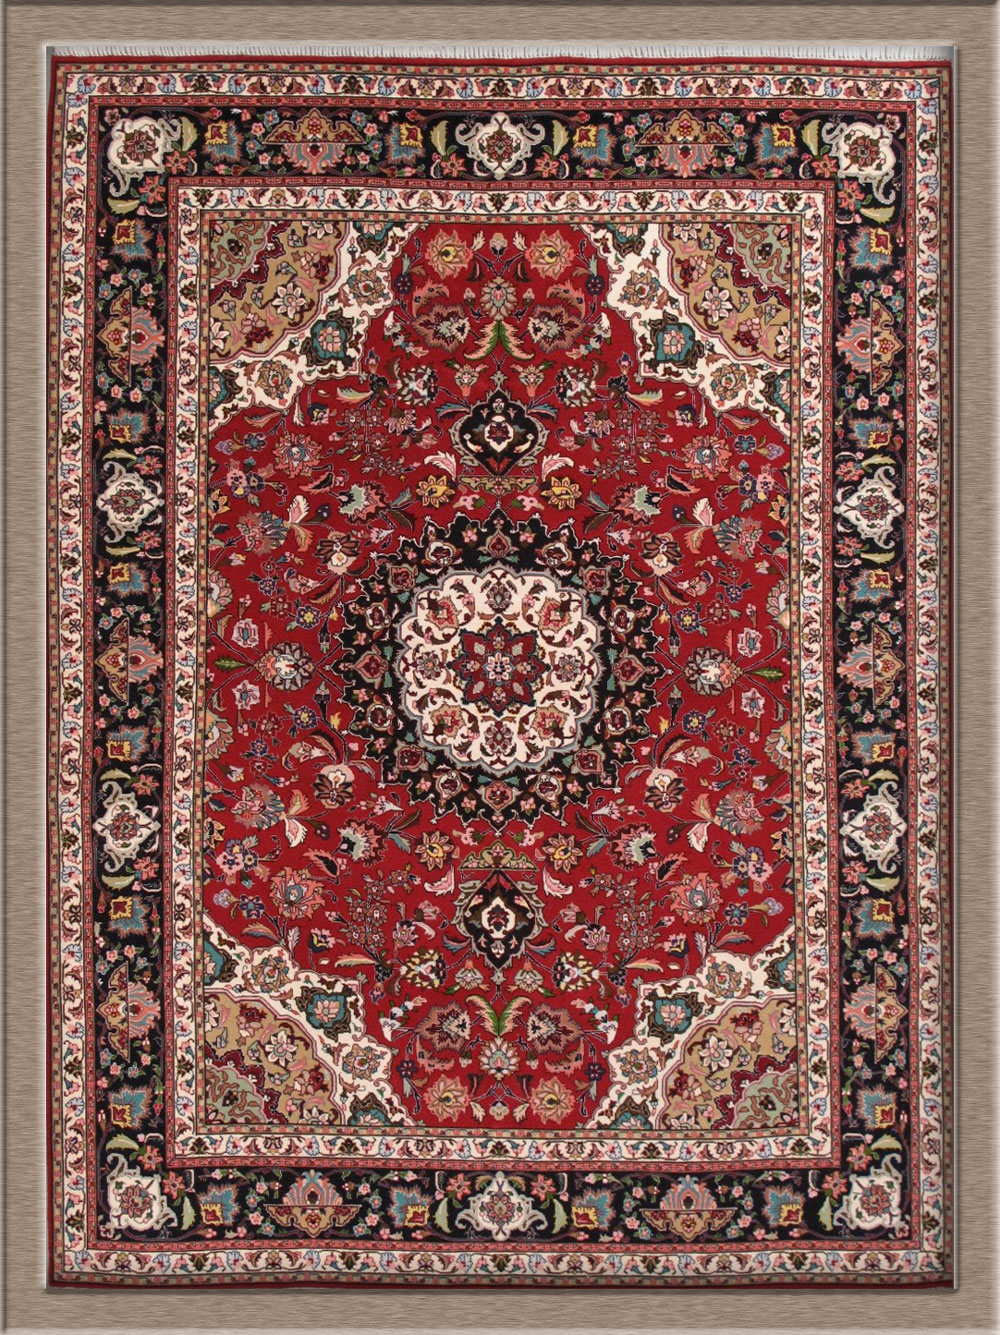 Persian Carpet Texture Carpet Vidalondon